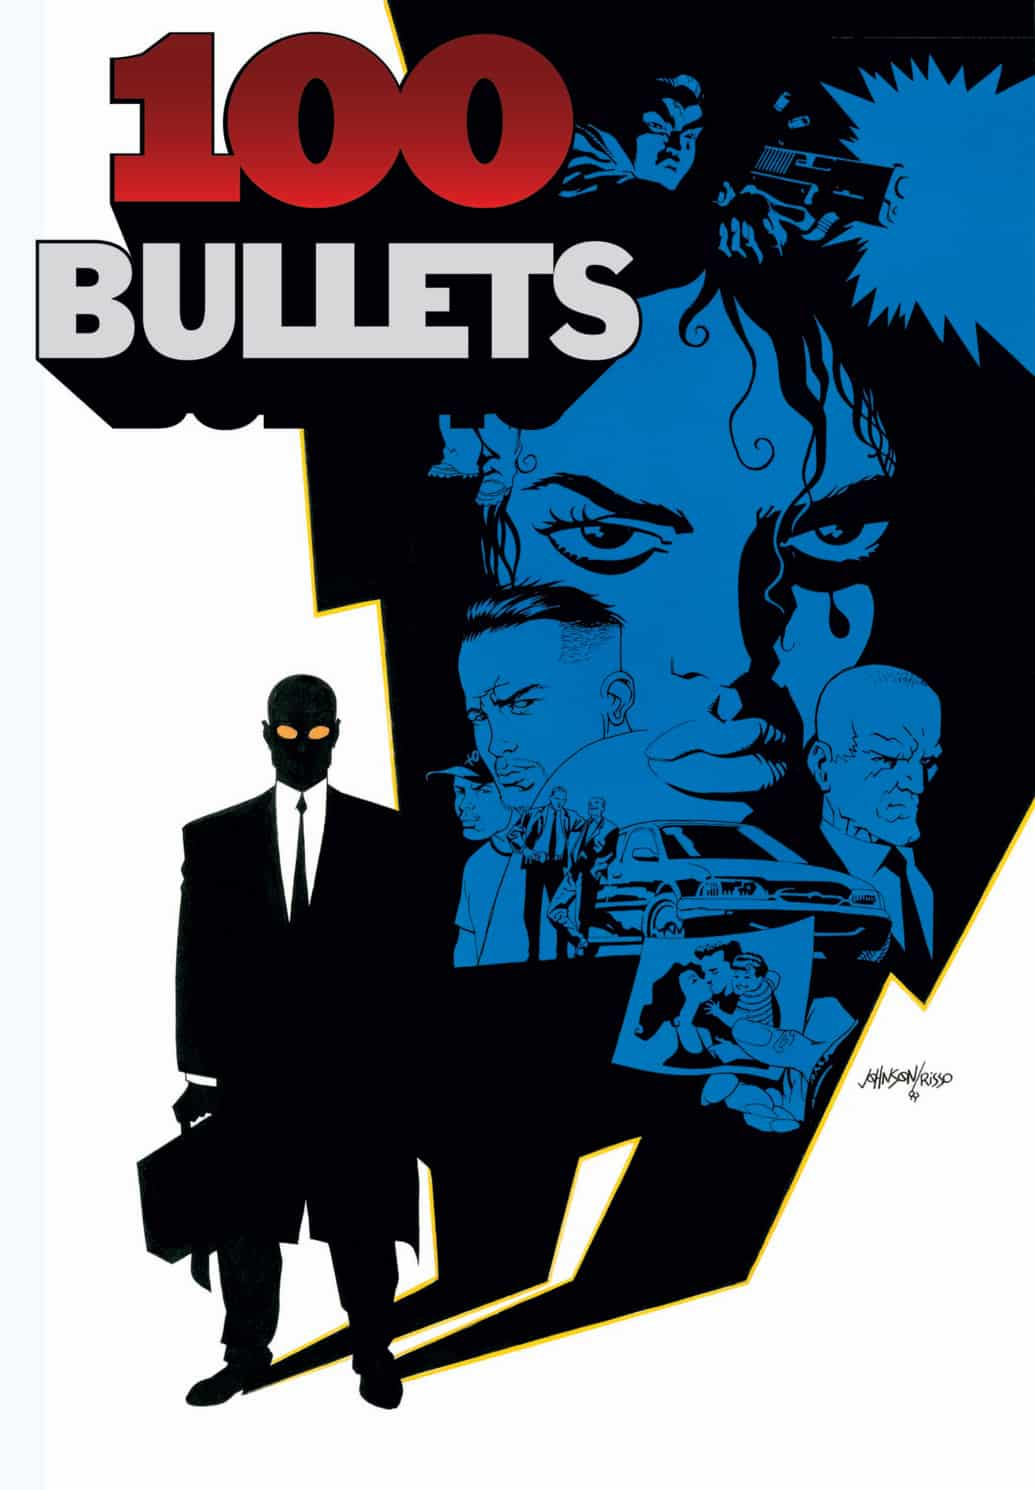 Comic Books 100 Bullets by Brian Azzarello | The Guy Blog